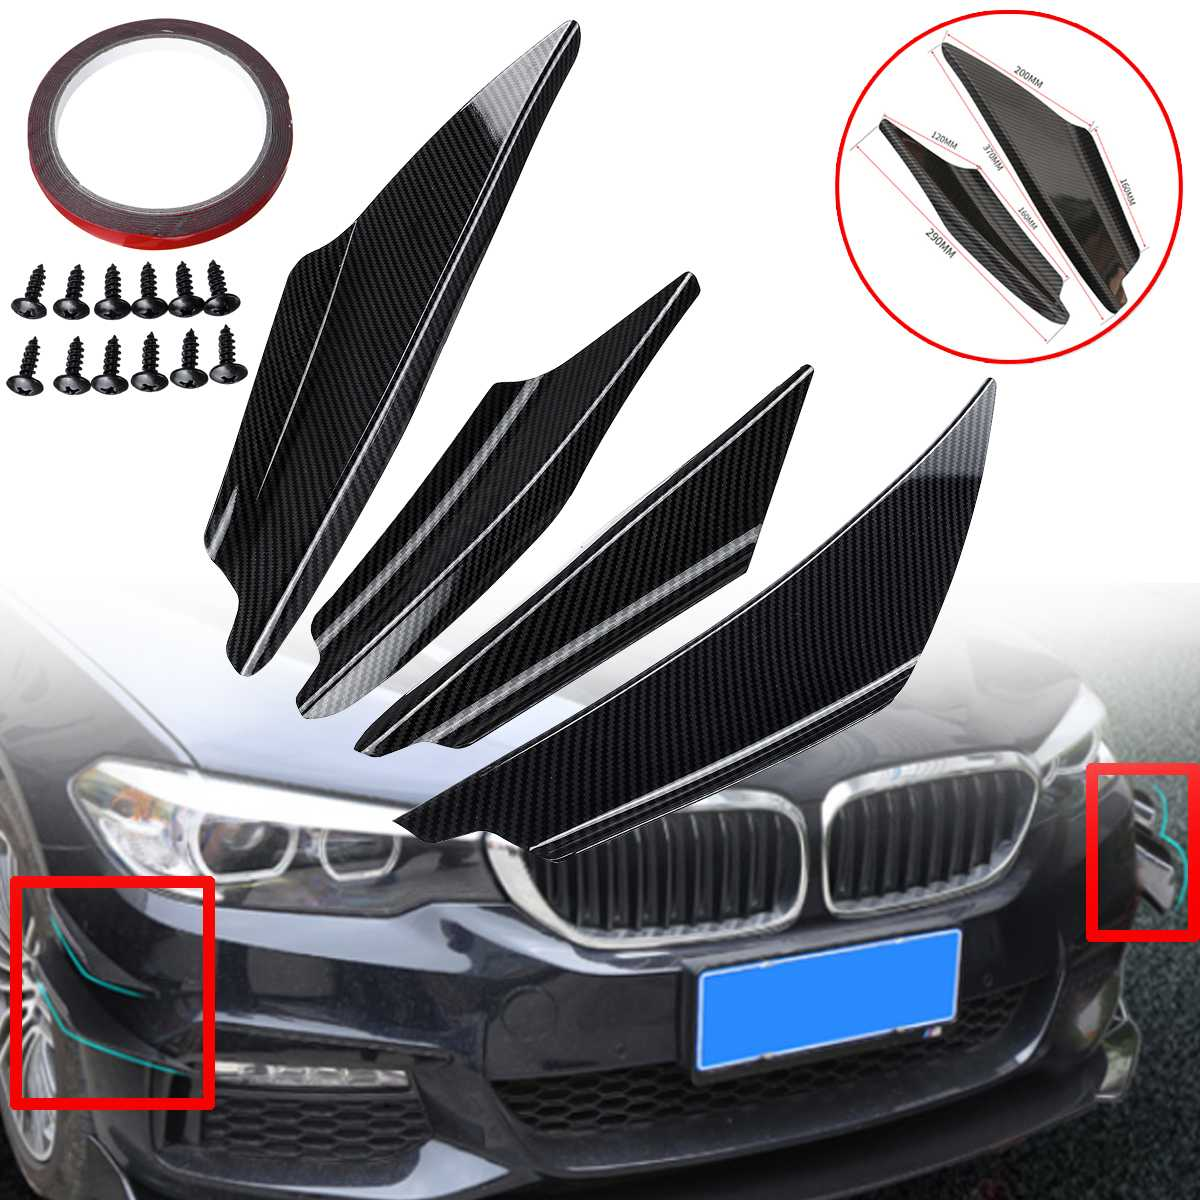 4Pcs Universal ABS Carbon Fiber Car Front Bumper Lip Spoiler Fins Canards Trim Kit with Adhesive Tape